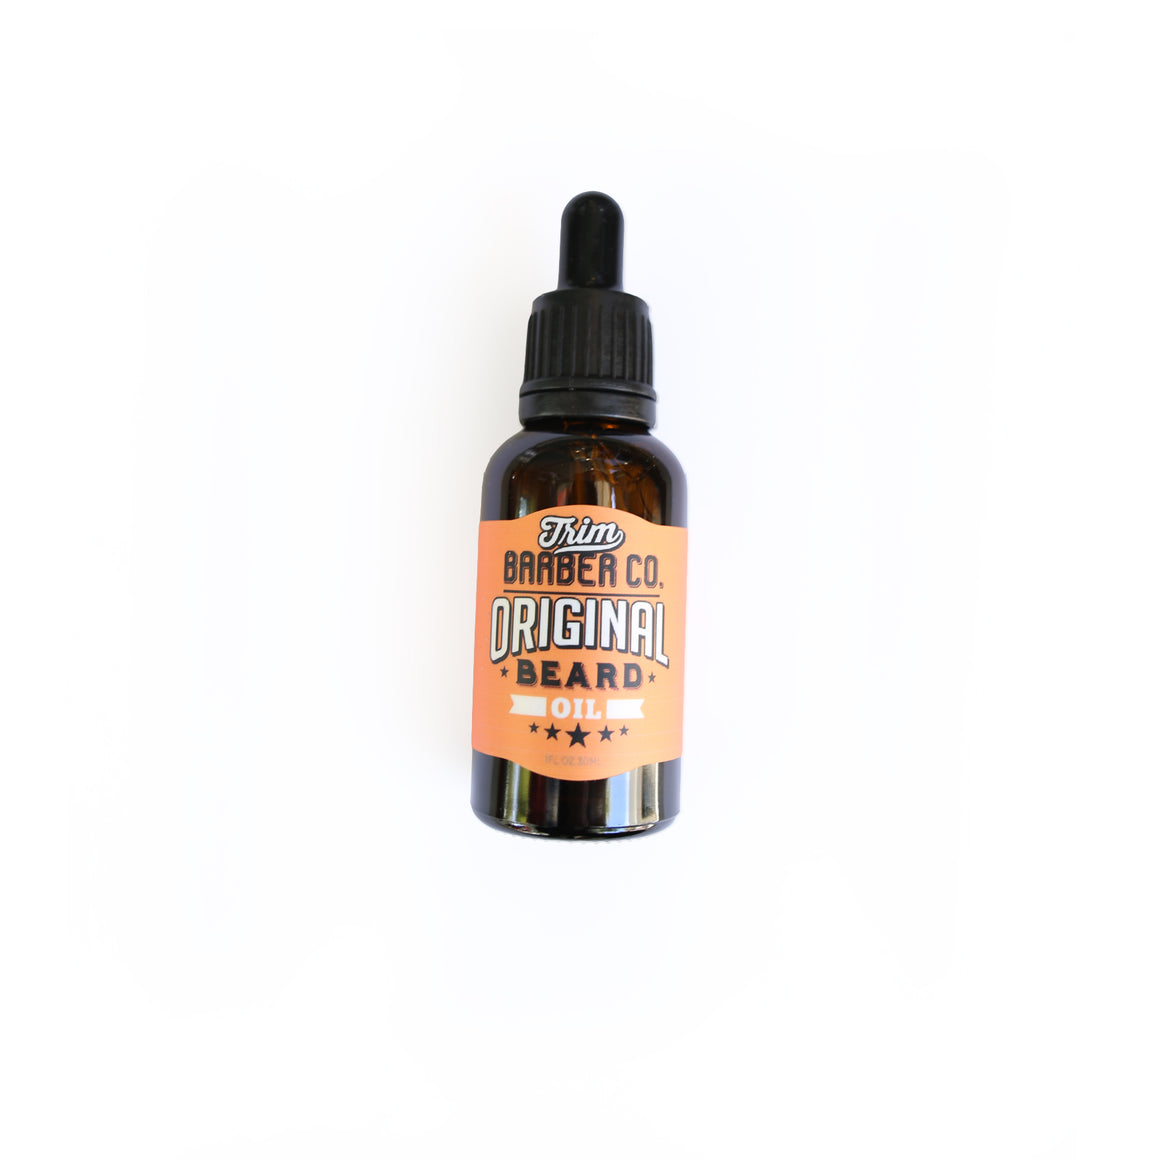 Trim Barber Co Beard Oil